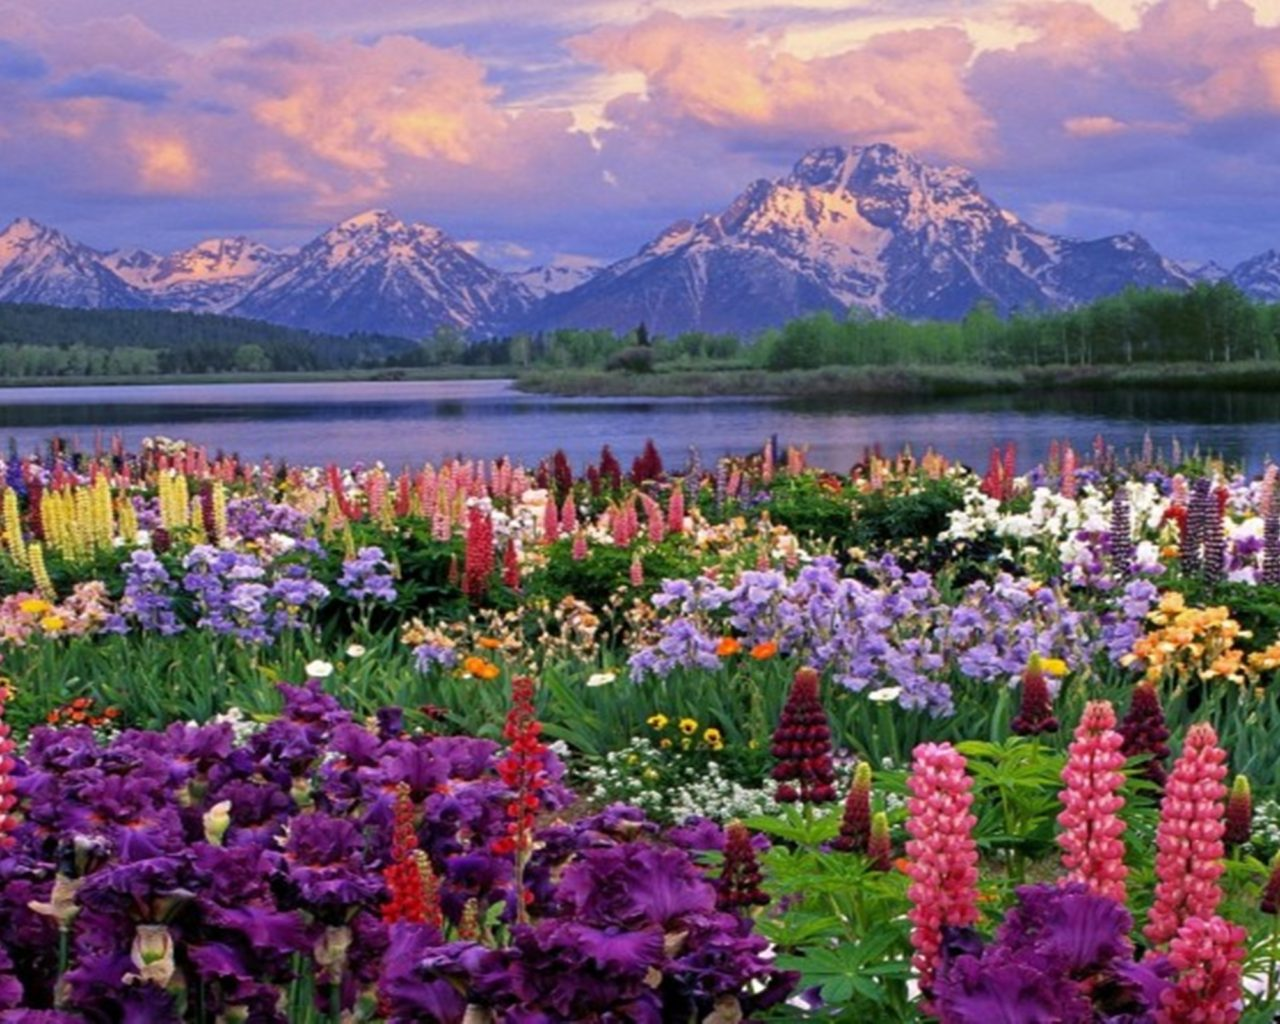 Hd Wallpaper Cars 2015 Mountains Landscapes Flowers Garden Scenic Lakes